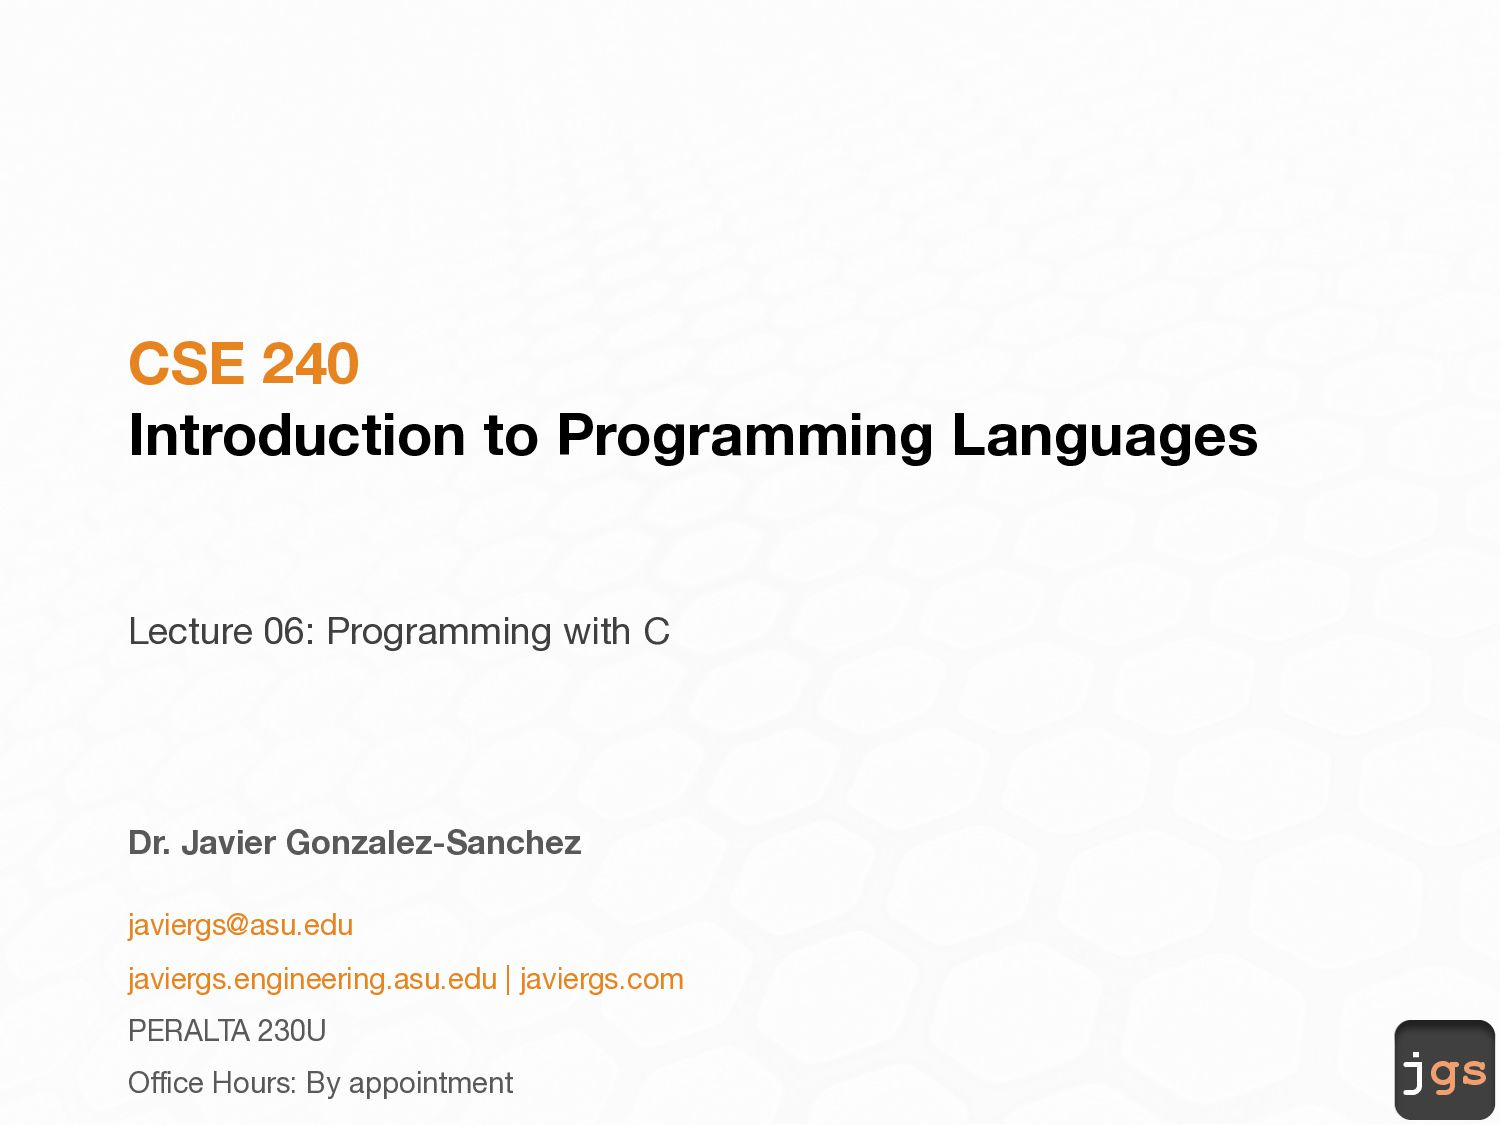 jgs CSE 240 Introduction to Programming Languag...